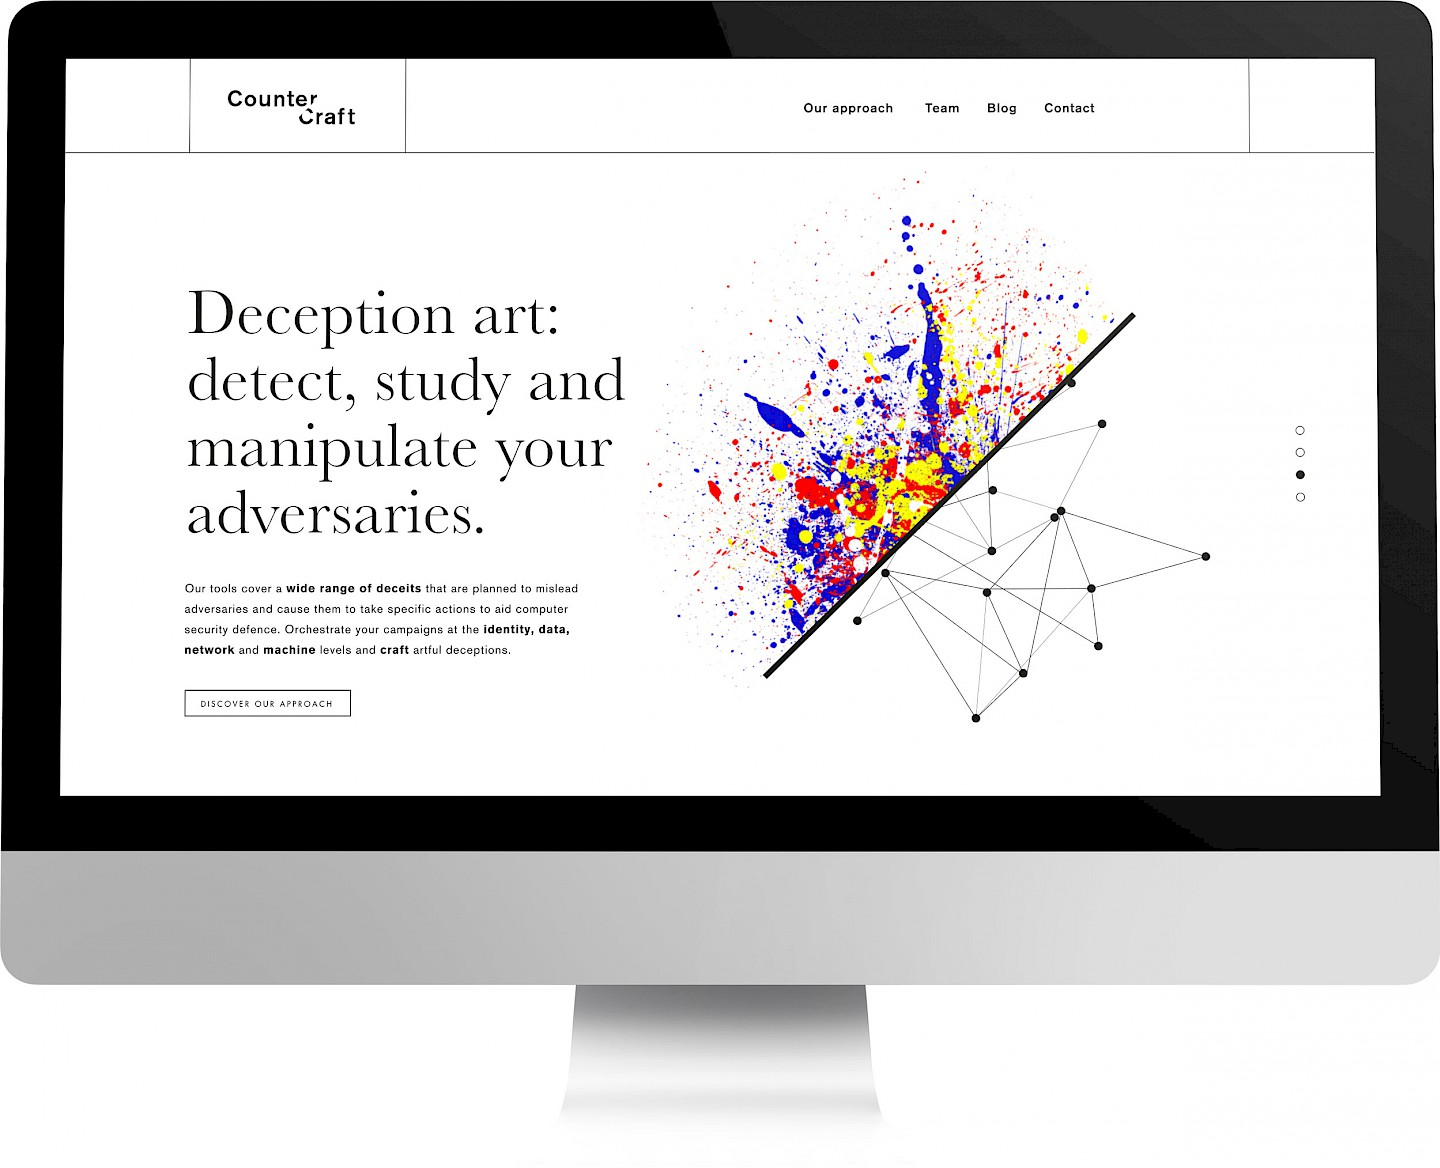 craft branding narrative digital spaces move 02 counter website design